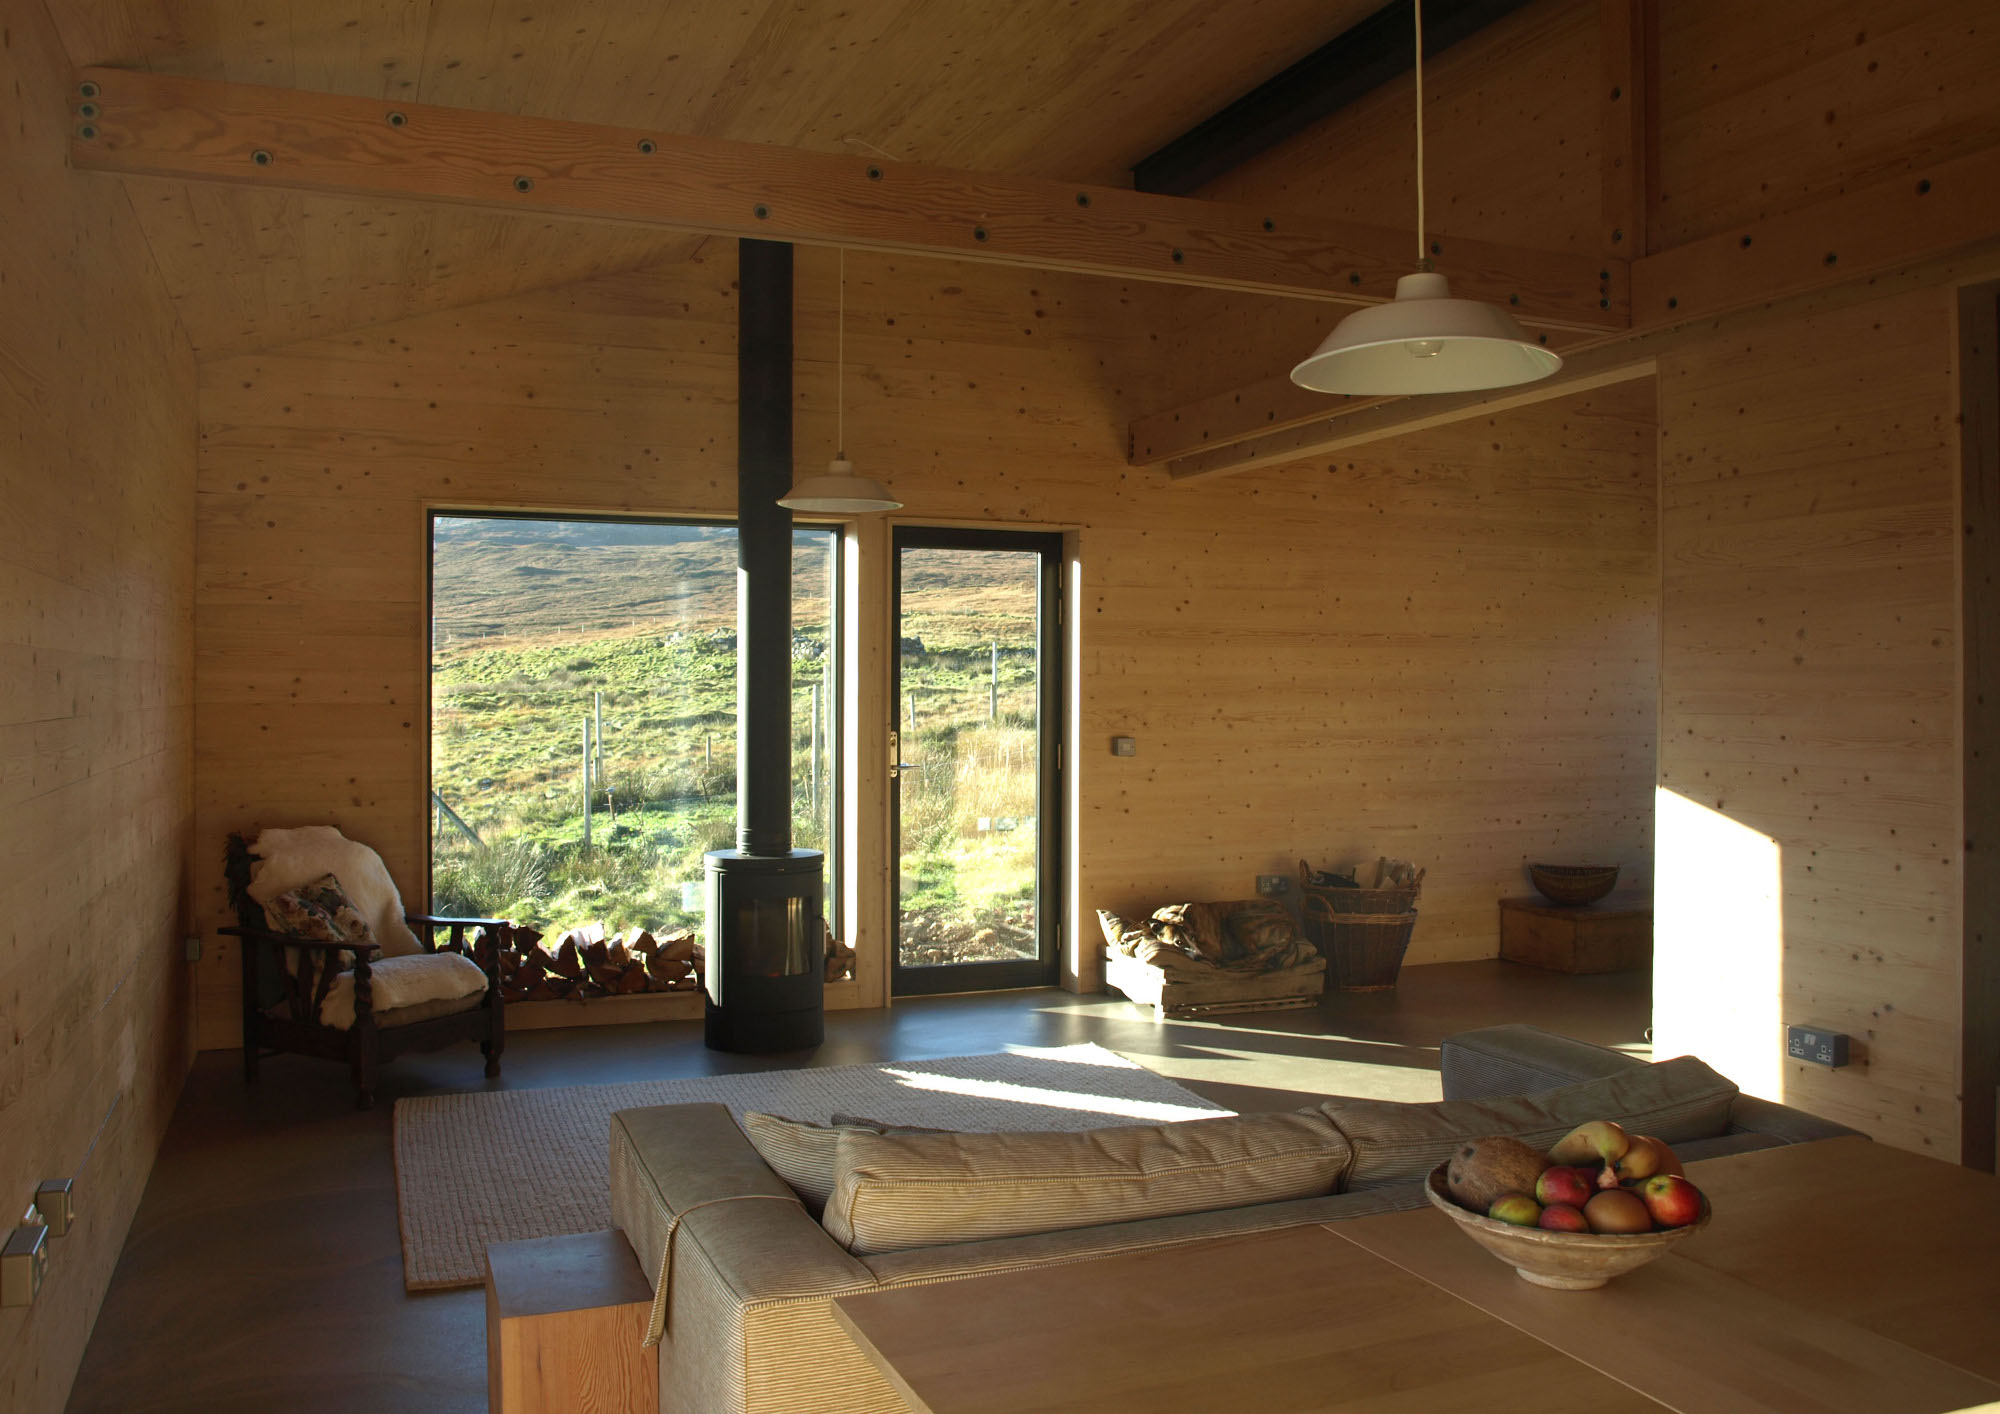 Amazing The Black Shed Rural Design Architects Small House Bliss